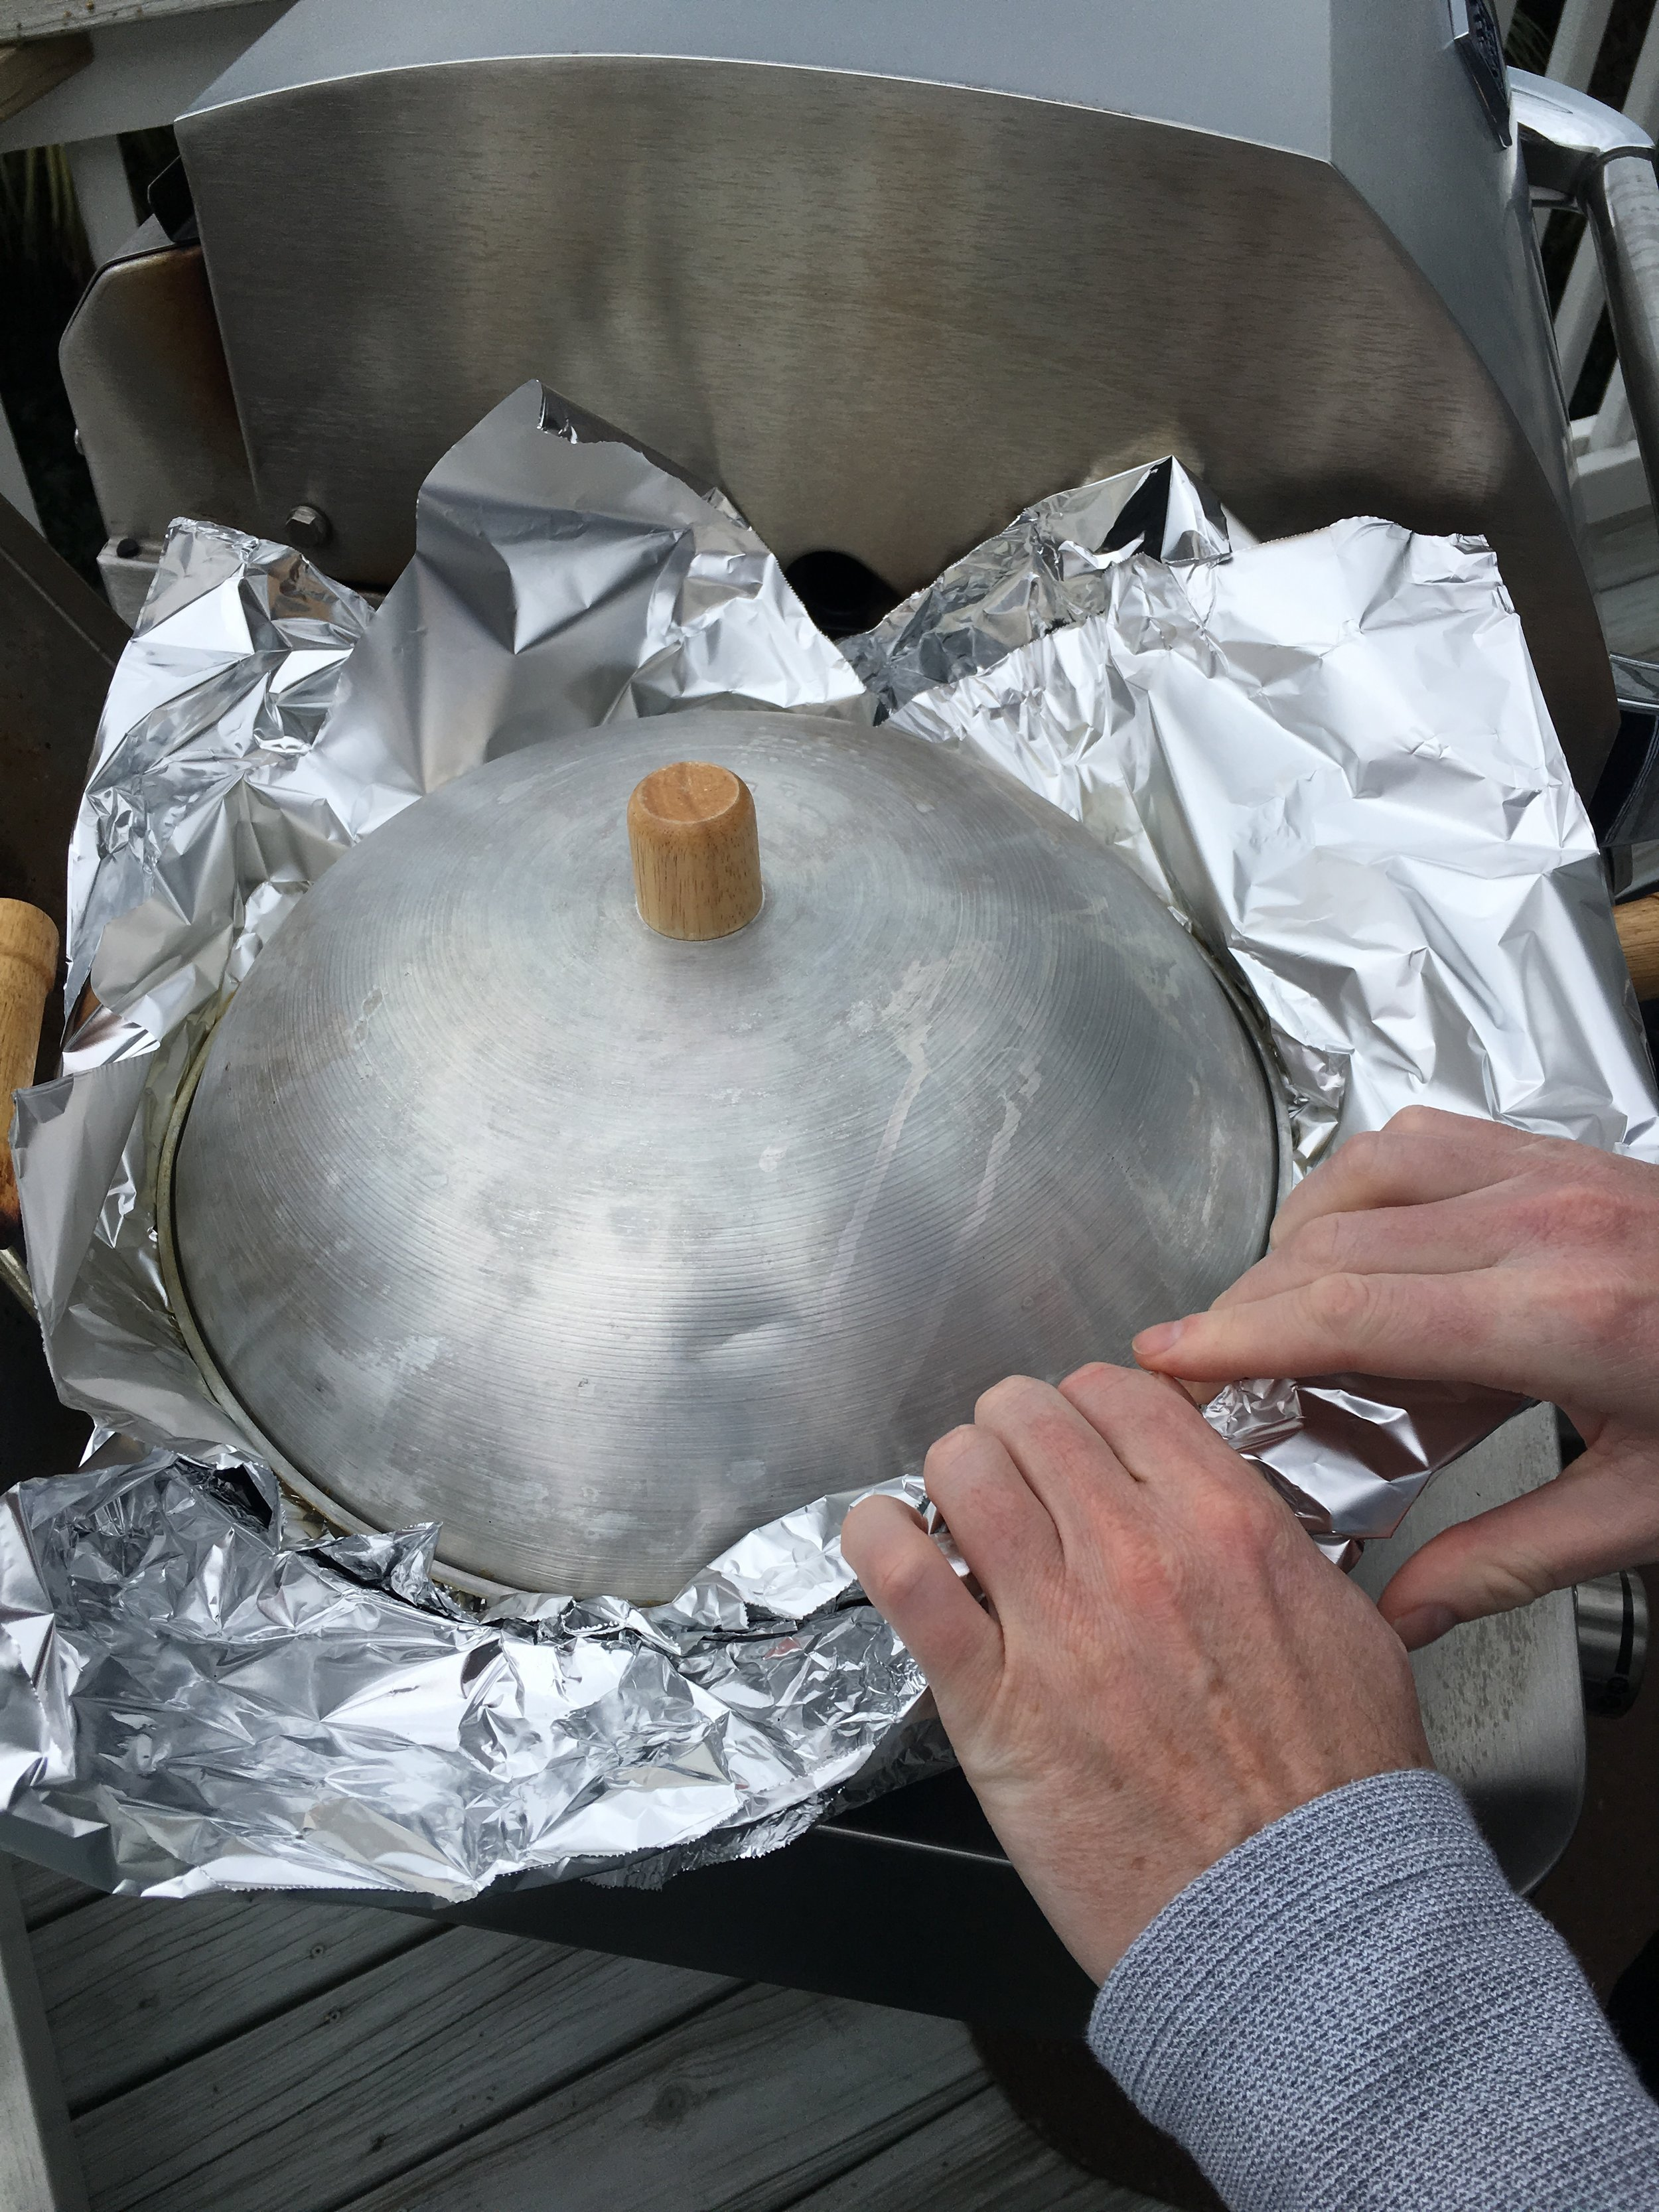 Once you see some wisps of smoke, pop that foil-lined lid on top of your wok and quickly (and carefully!) roll and crimp the two layers of foil together to form your seal.